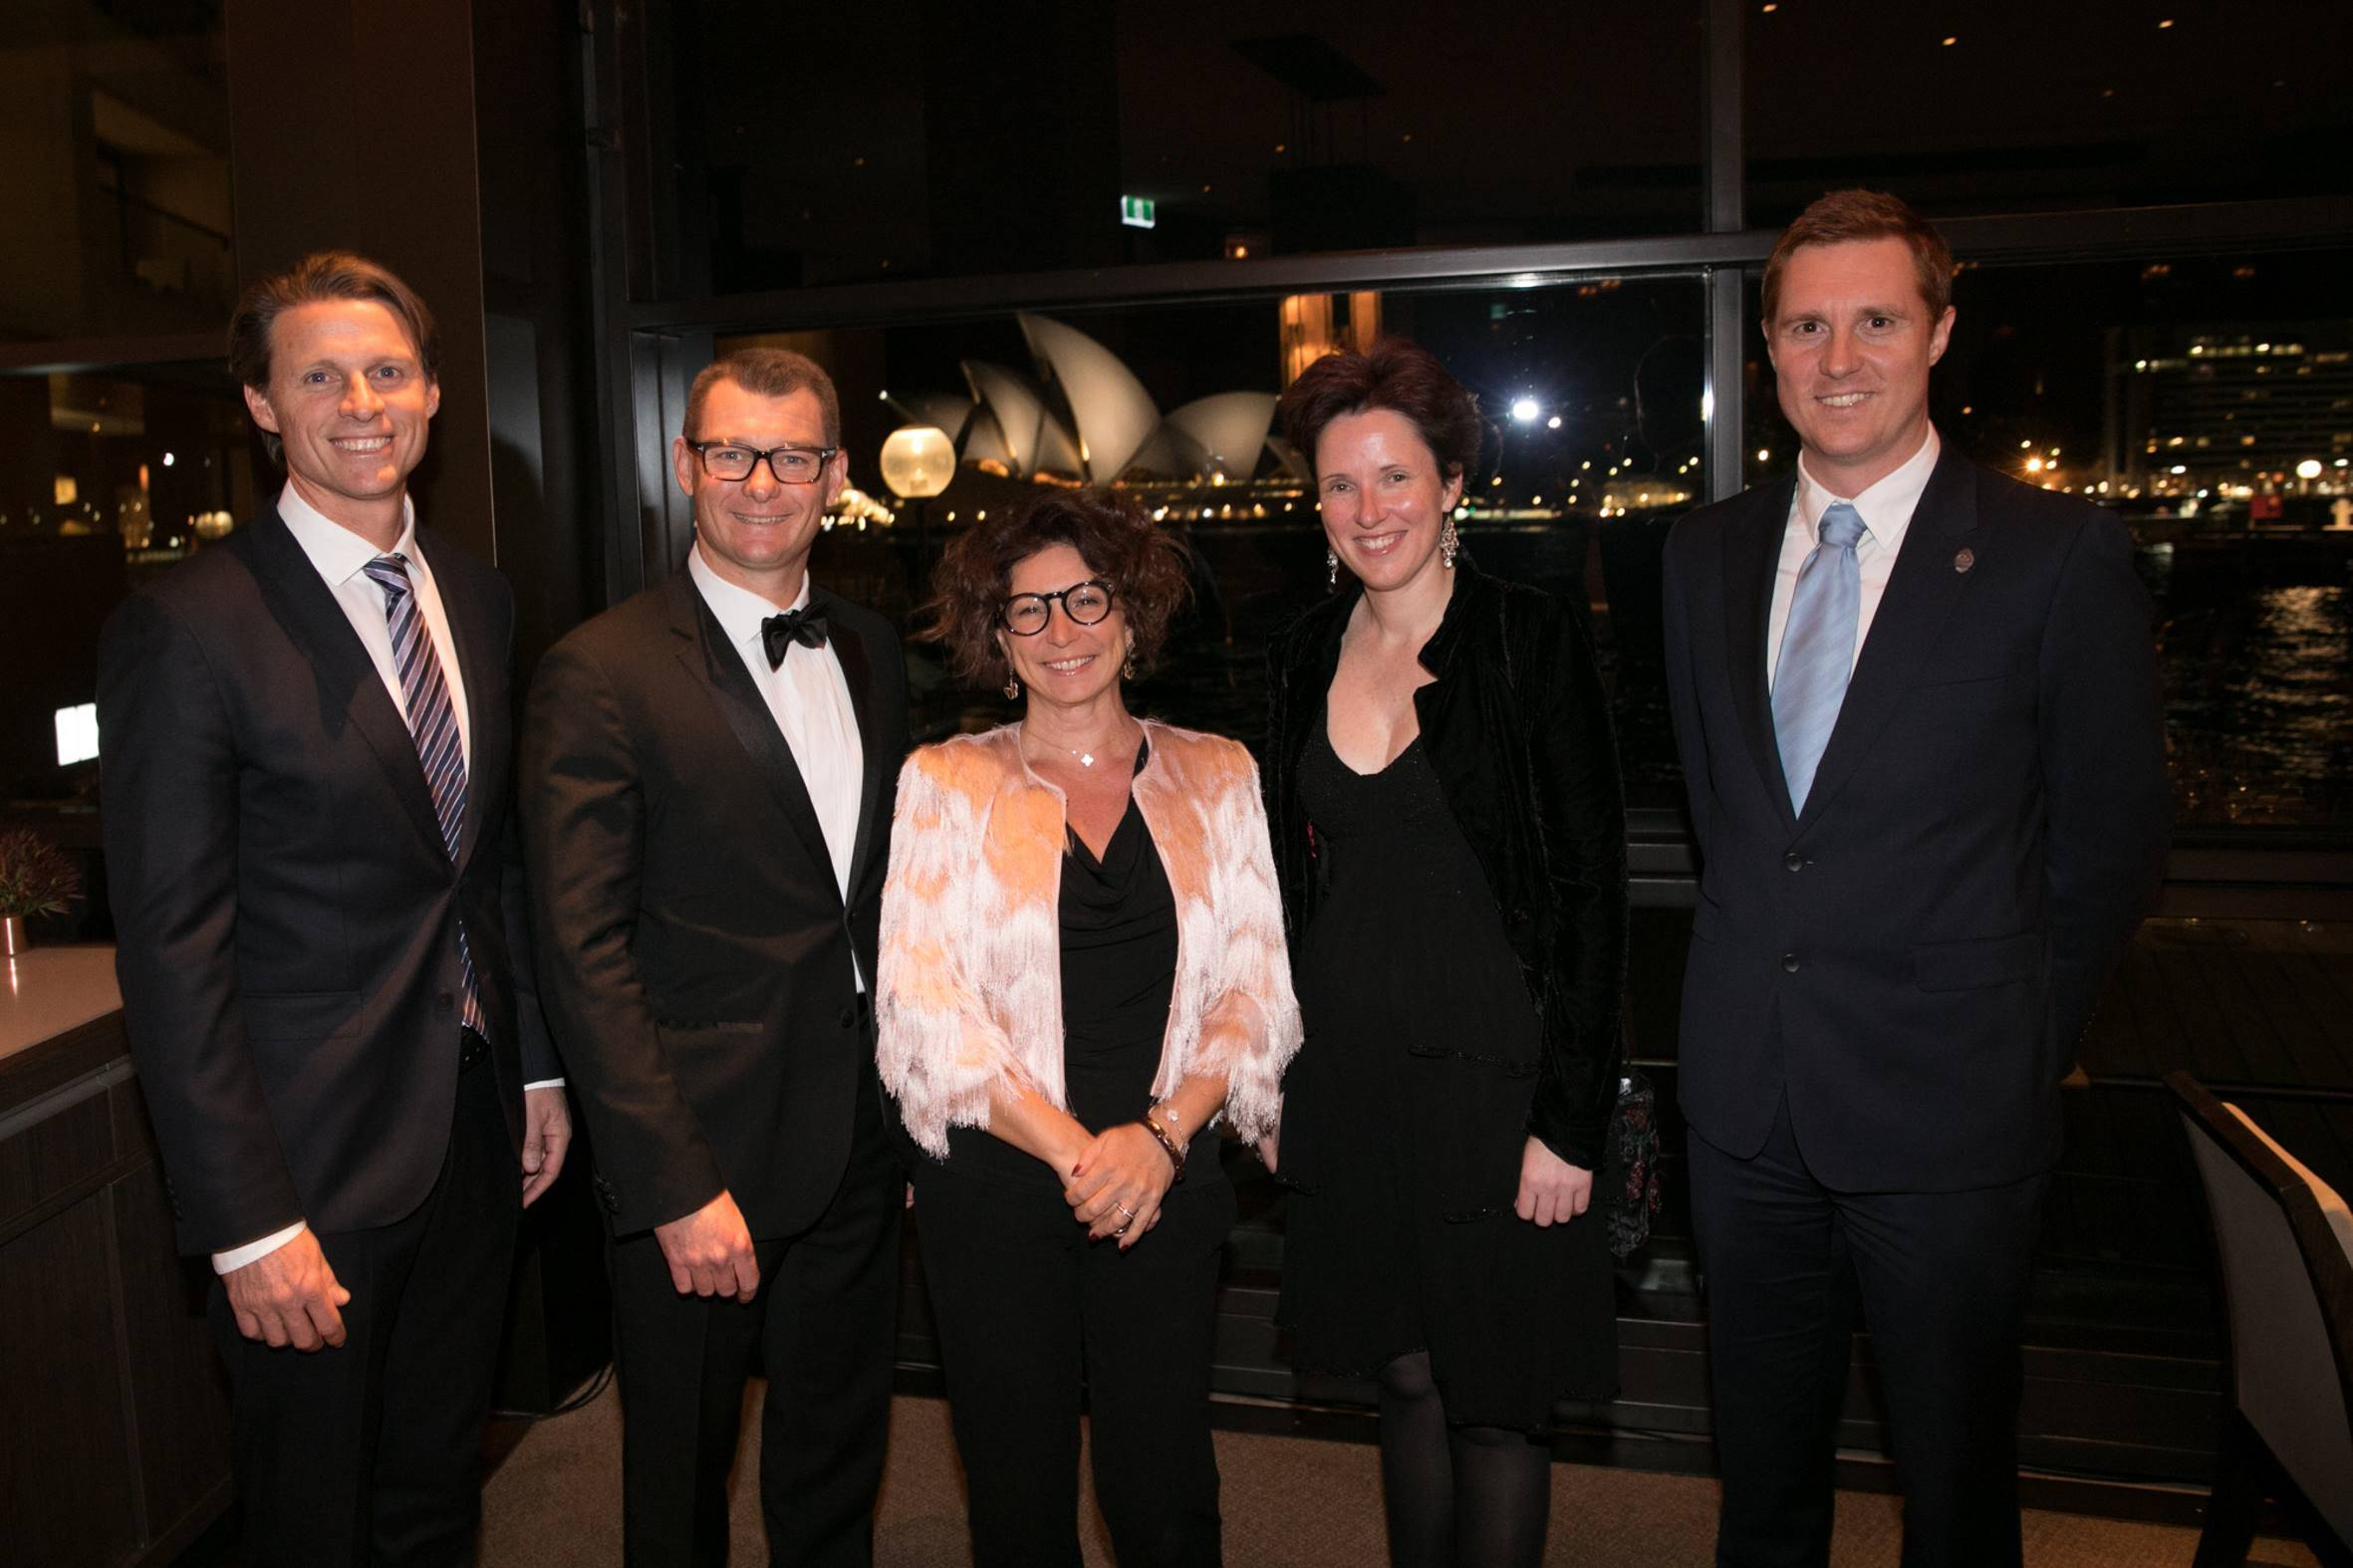 CAPTION: From left to right: Justin Scarr, CEO Royal Life Saving Australia; Marc Von Arnim, General Manager Park Hyatt Sydney; Her Excellency Mrs. Catherine Fautrier, Ambassador of Monaco to Australia; Monique Sharp, Royal Life Saving Australia; and Hadrien Bourely, Consul Honorary of Monaco in Sydney.